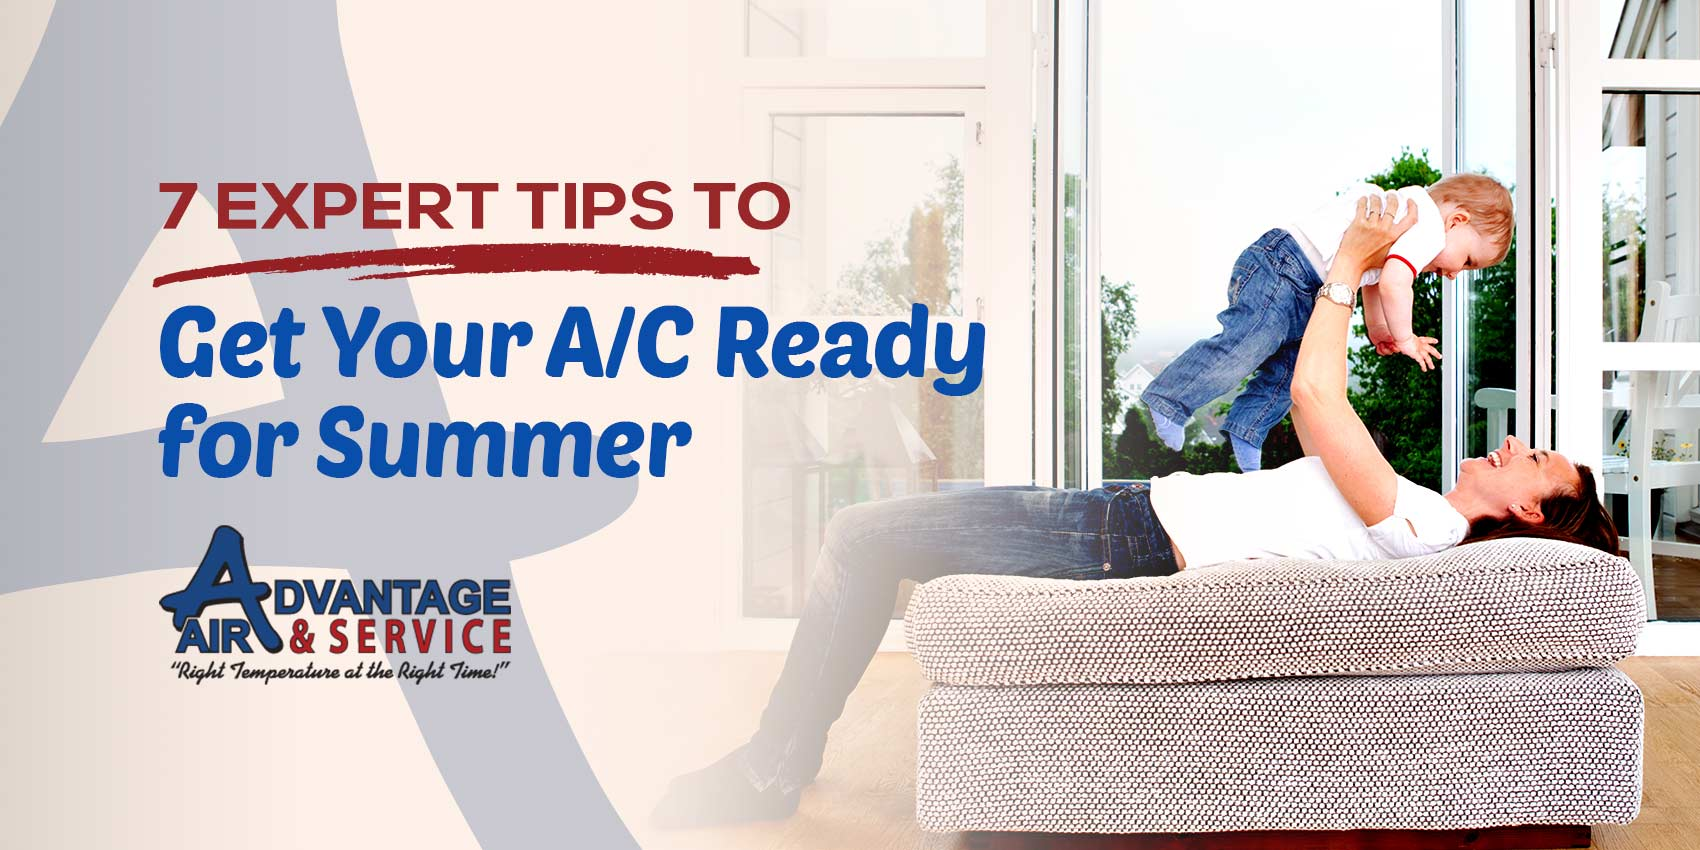 7 Expert Tips To Get Your A/C Ready for Summer